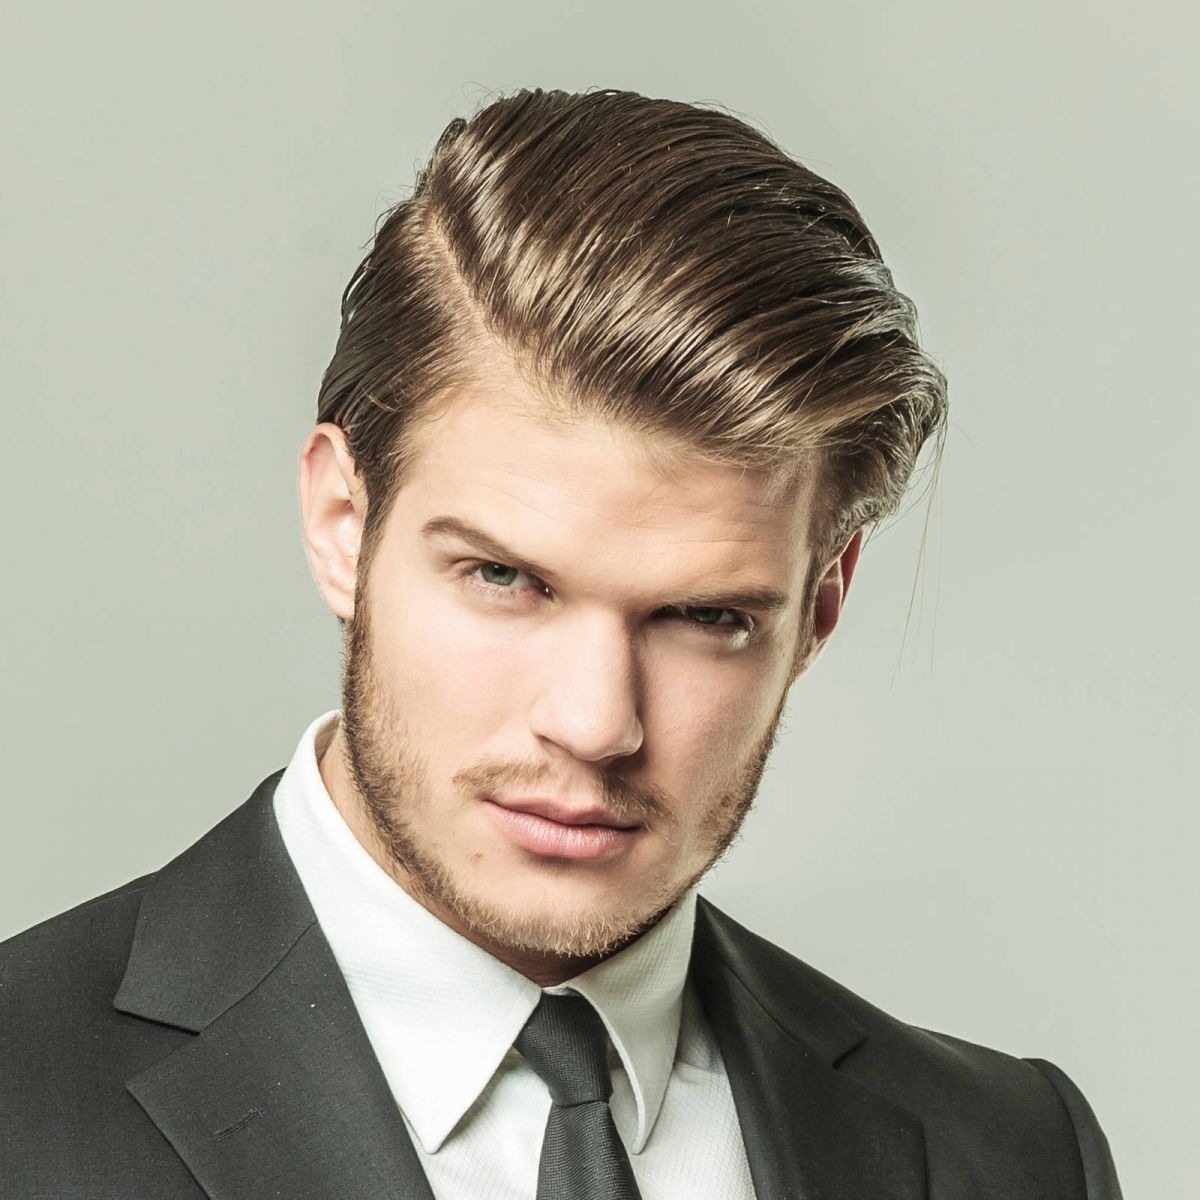 Best Hairstyles For Men And Boys – The Ultimate Guide 2018 Intended For Most Popular Shaggy Mop Hairstyles (View 3 of 15)